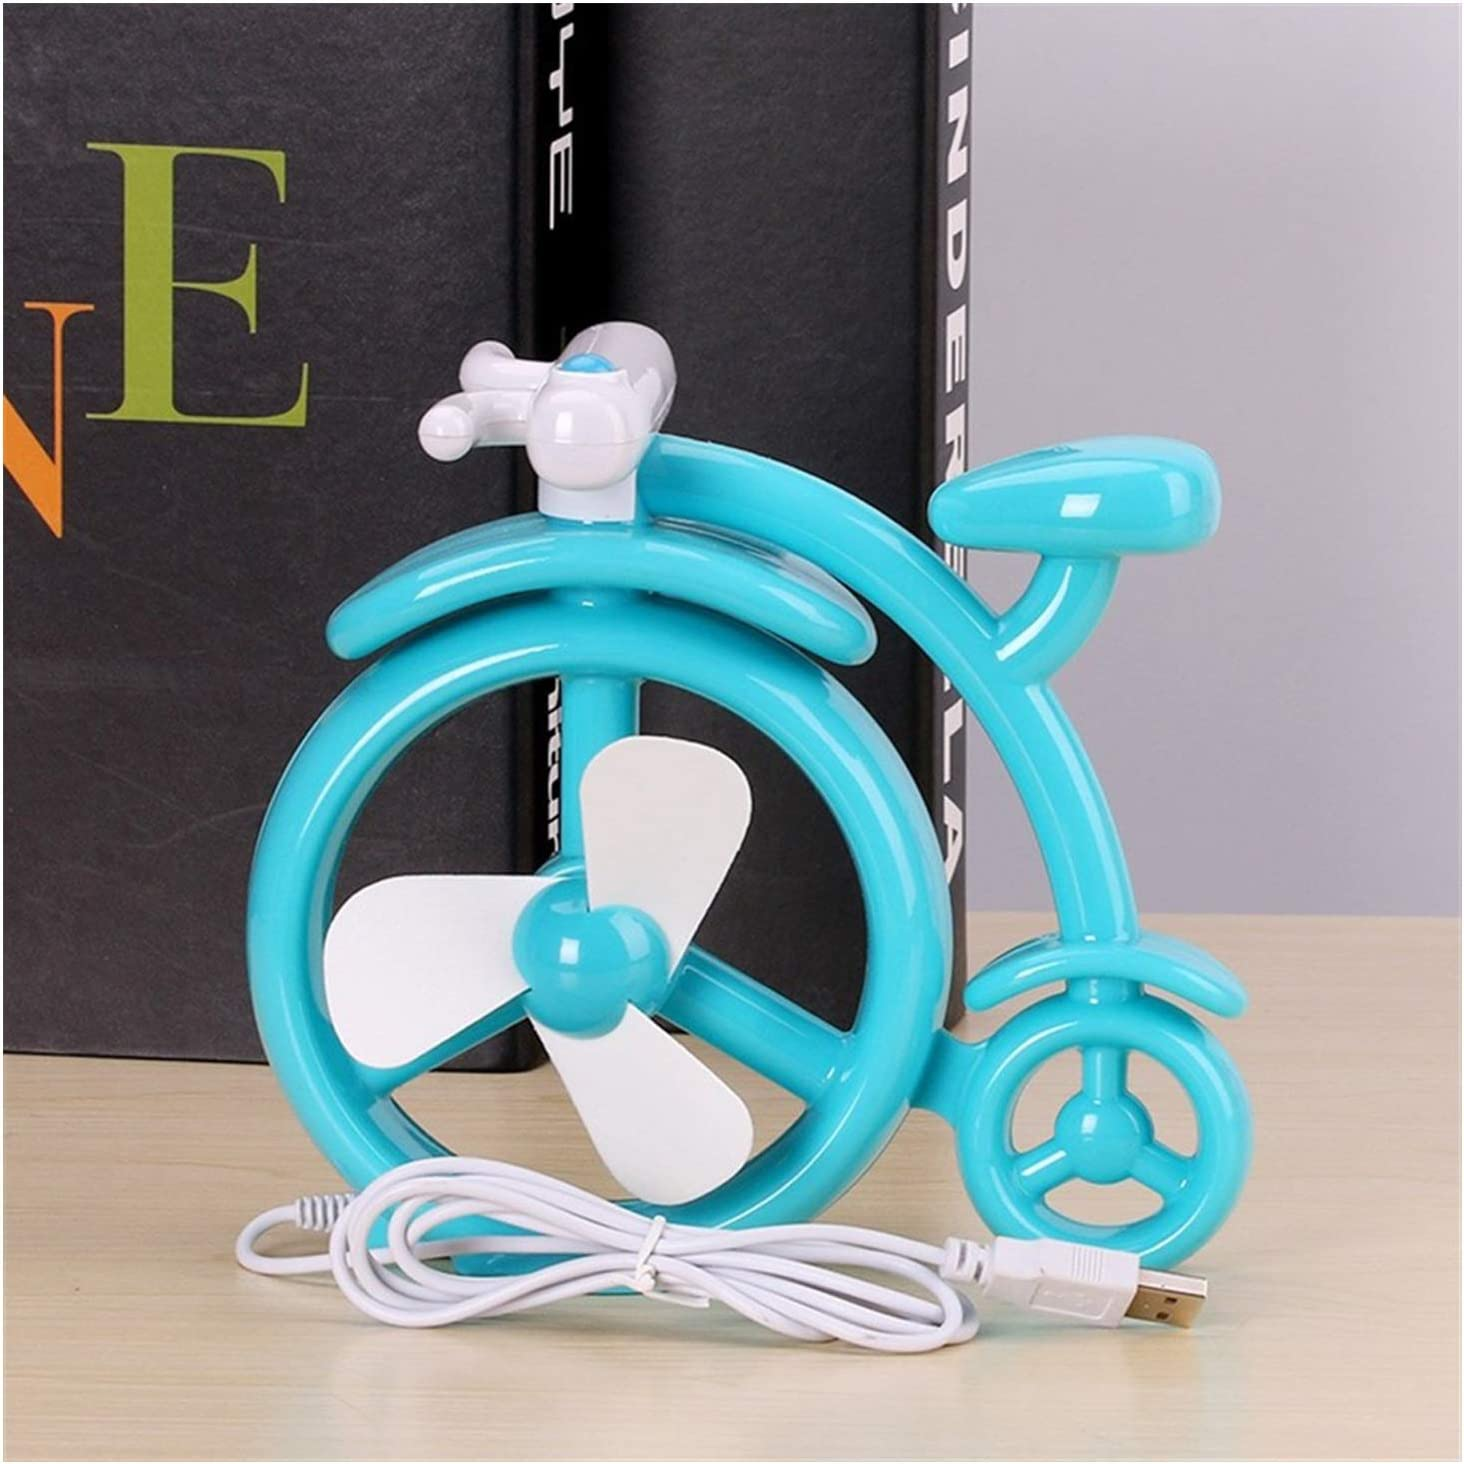 Air Cooling Fan Bicycle Design Mini Fan USB Handheld Portable 3 Leaf Electric Fan Outdoor Cooling Personal Fans Color : Blue